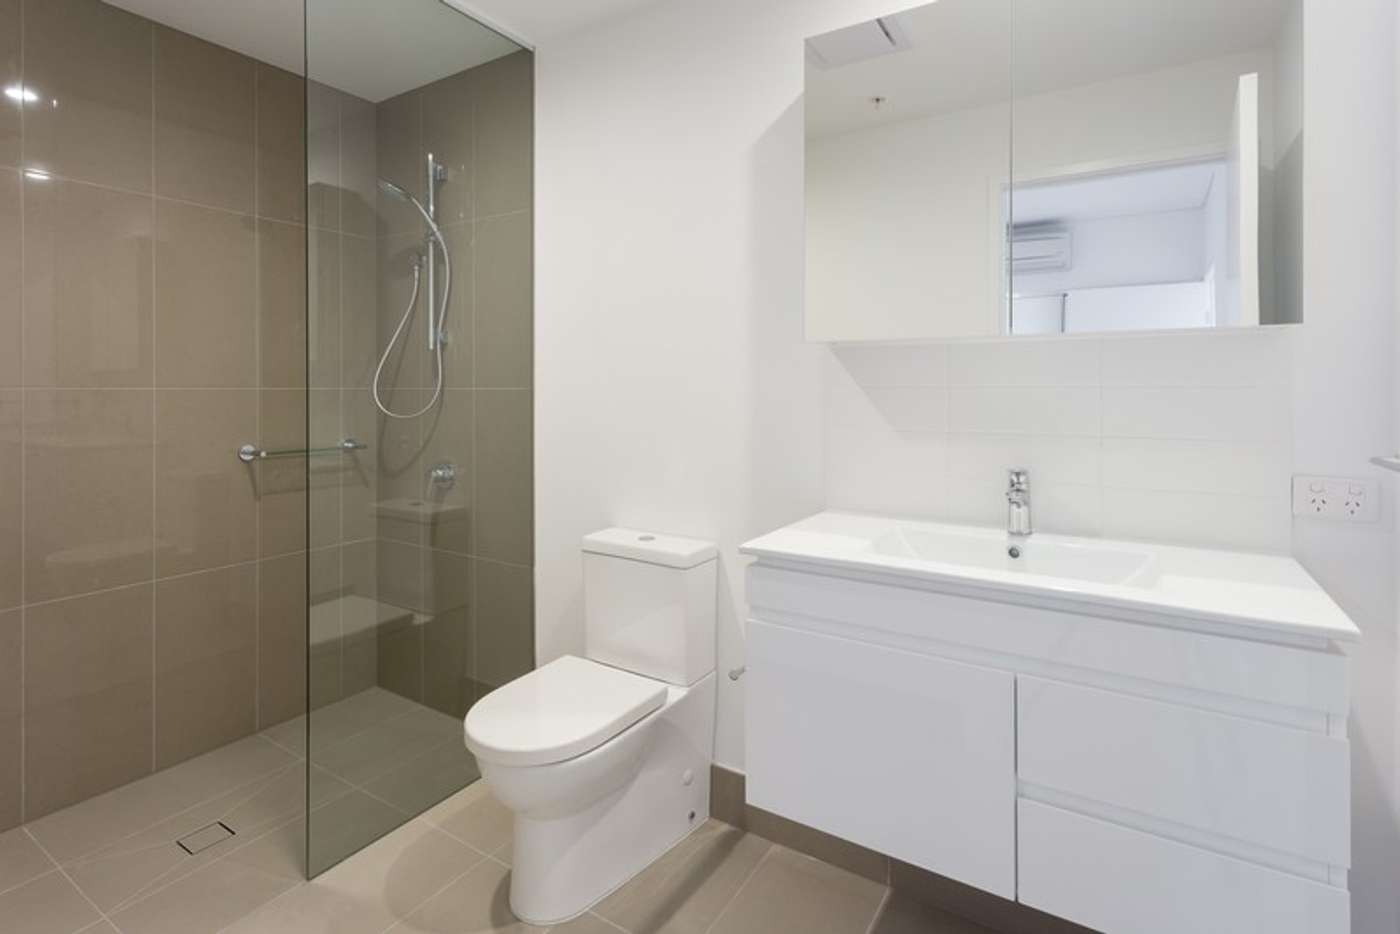 Fifth view of Homely apartment listing, 10411/320 Macarthur Avenue, Hamilton QLD 4007